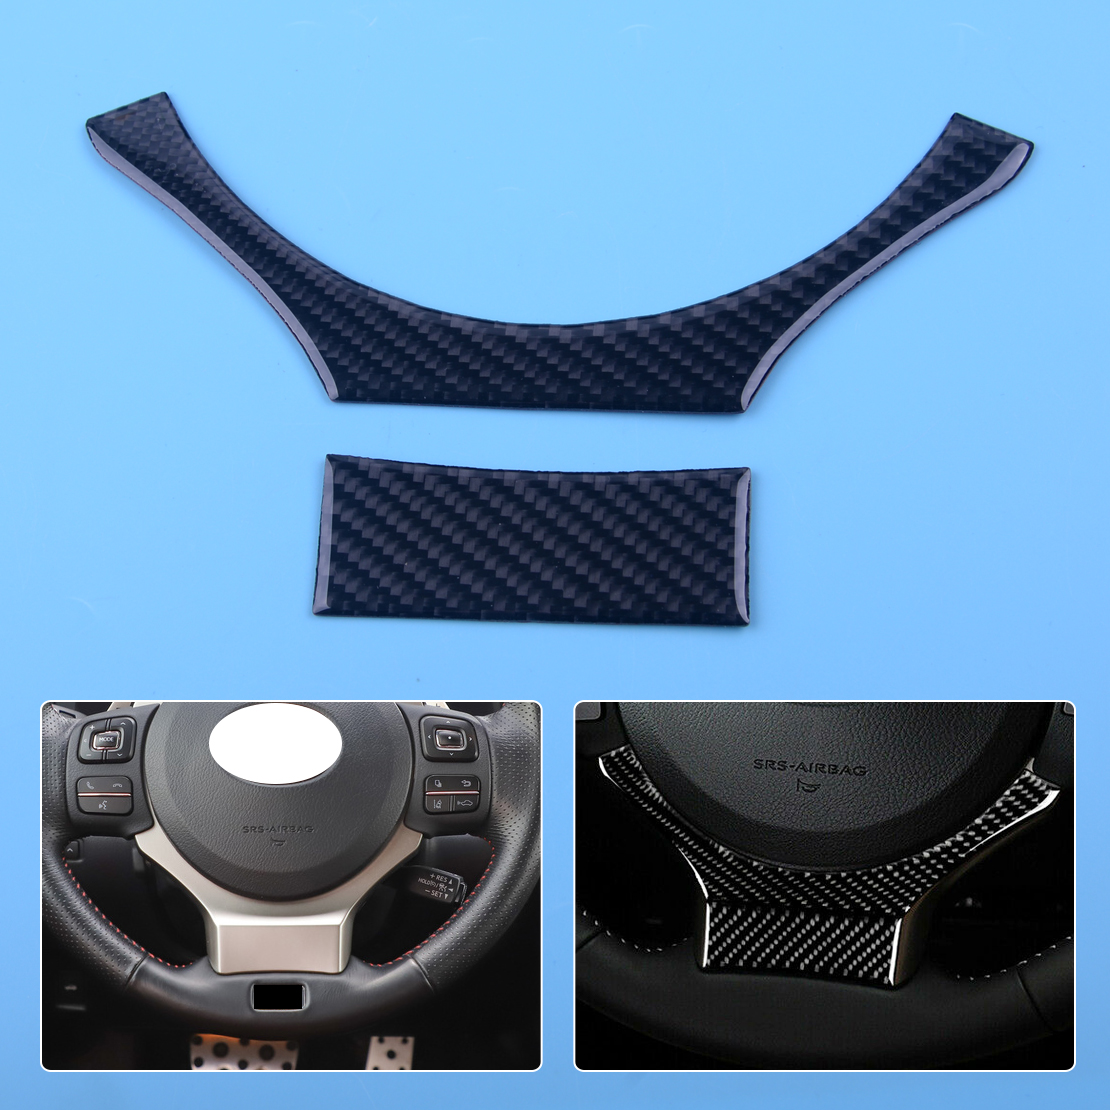 DWCX Black Carbon Fiber Steering Wheel Cover Trim Stripes Panel Frame Fit for Lexus IS250 IS300 IS350 2014 2015 2016 2017 in Interior Mouldings from Automobiles Motorcycles